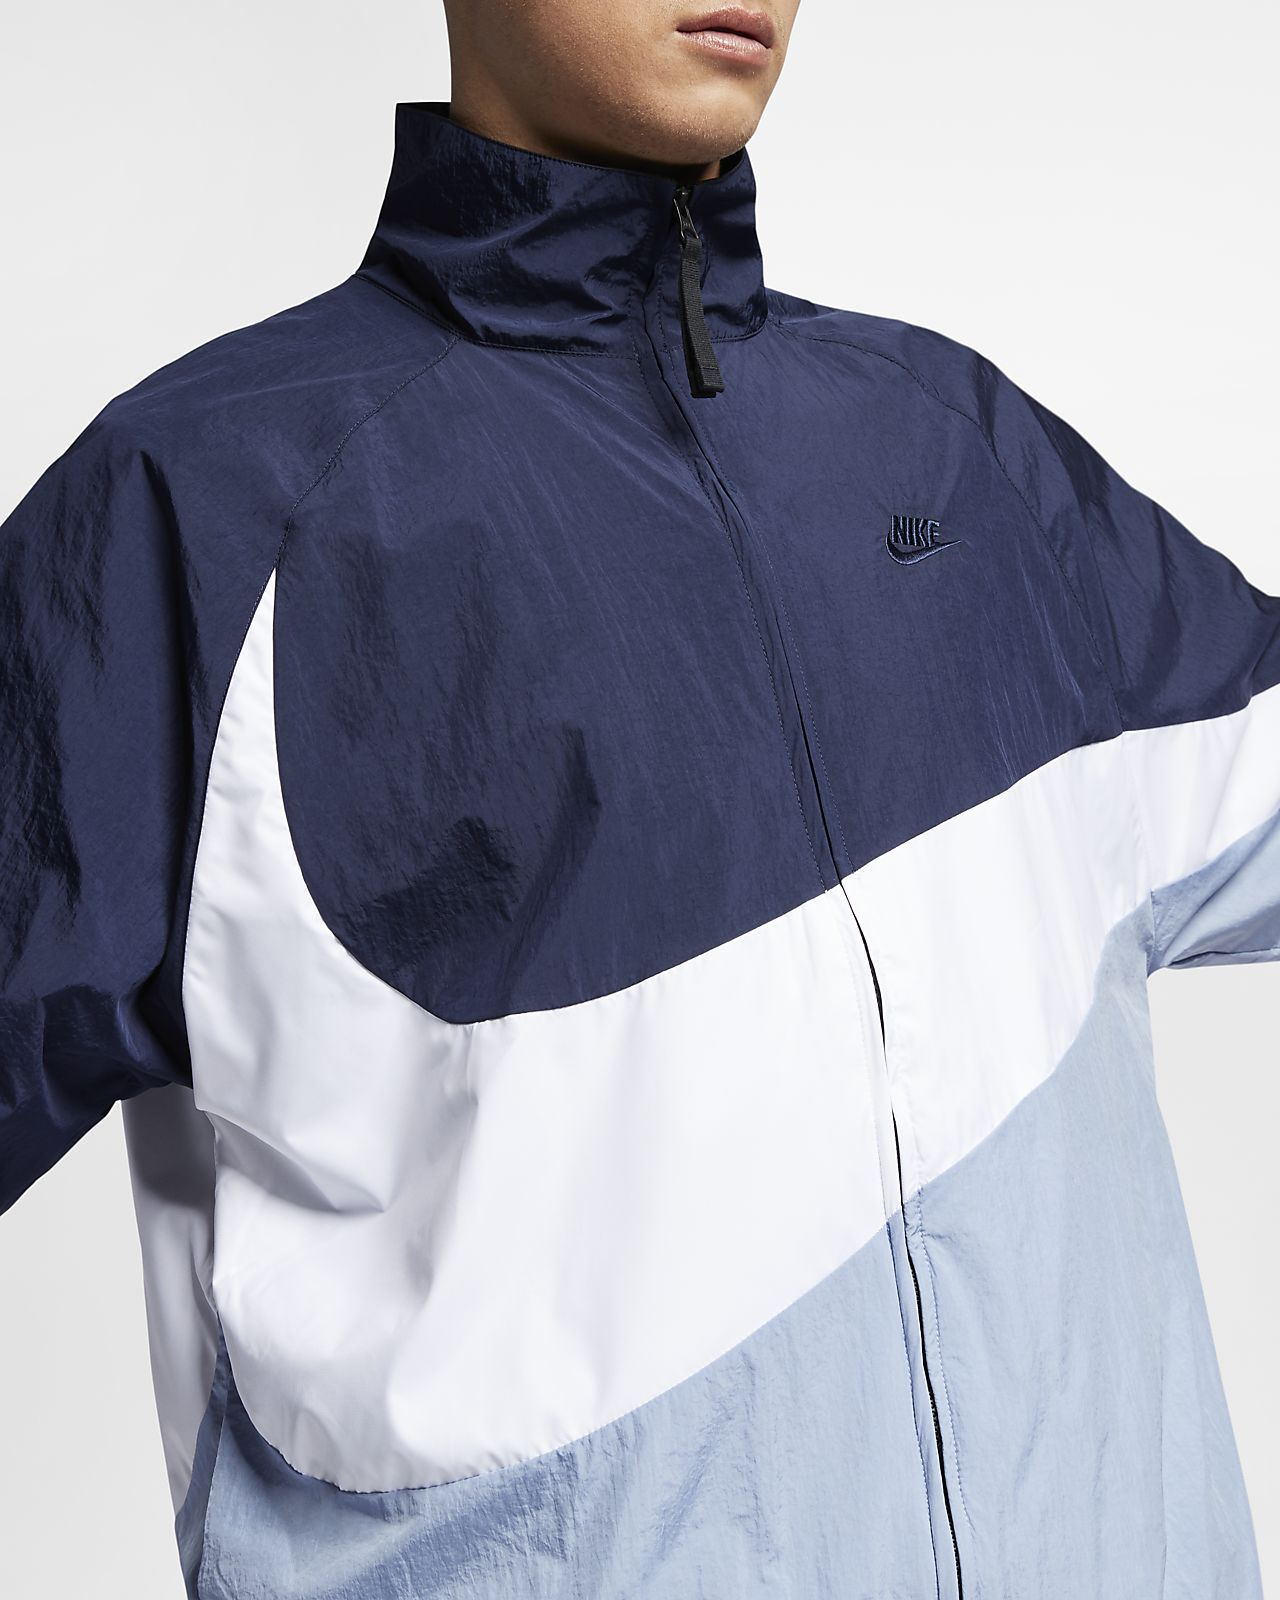 76098a281d loose Ch Nike Sportswear Fit Giacca A Swoosh Vento Woven q8wPTY